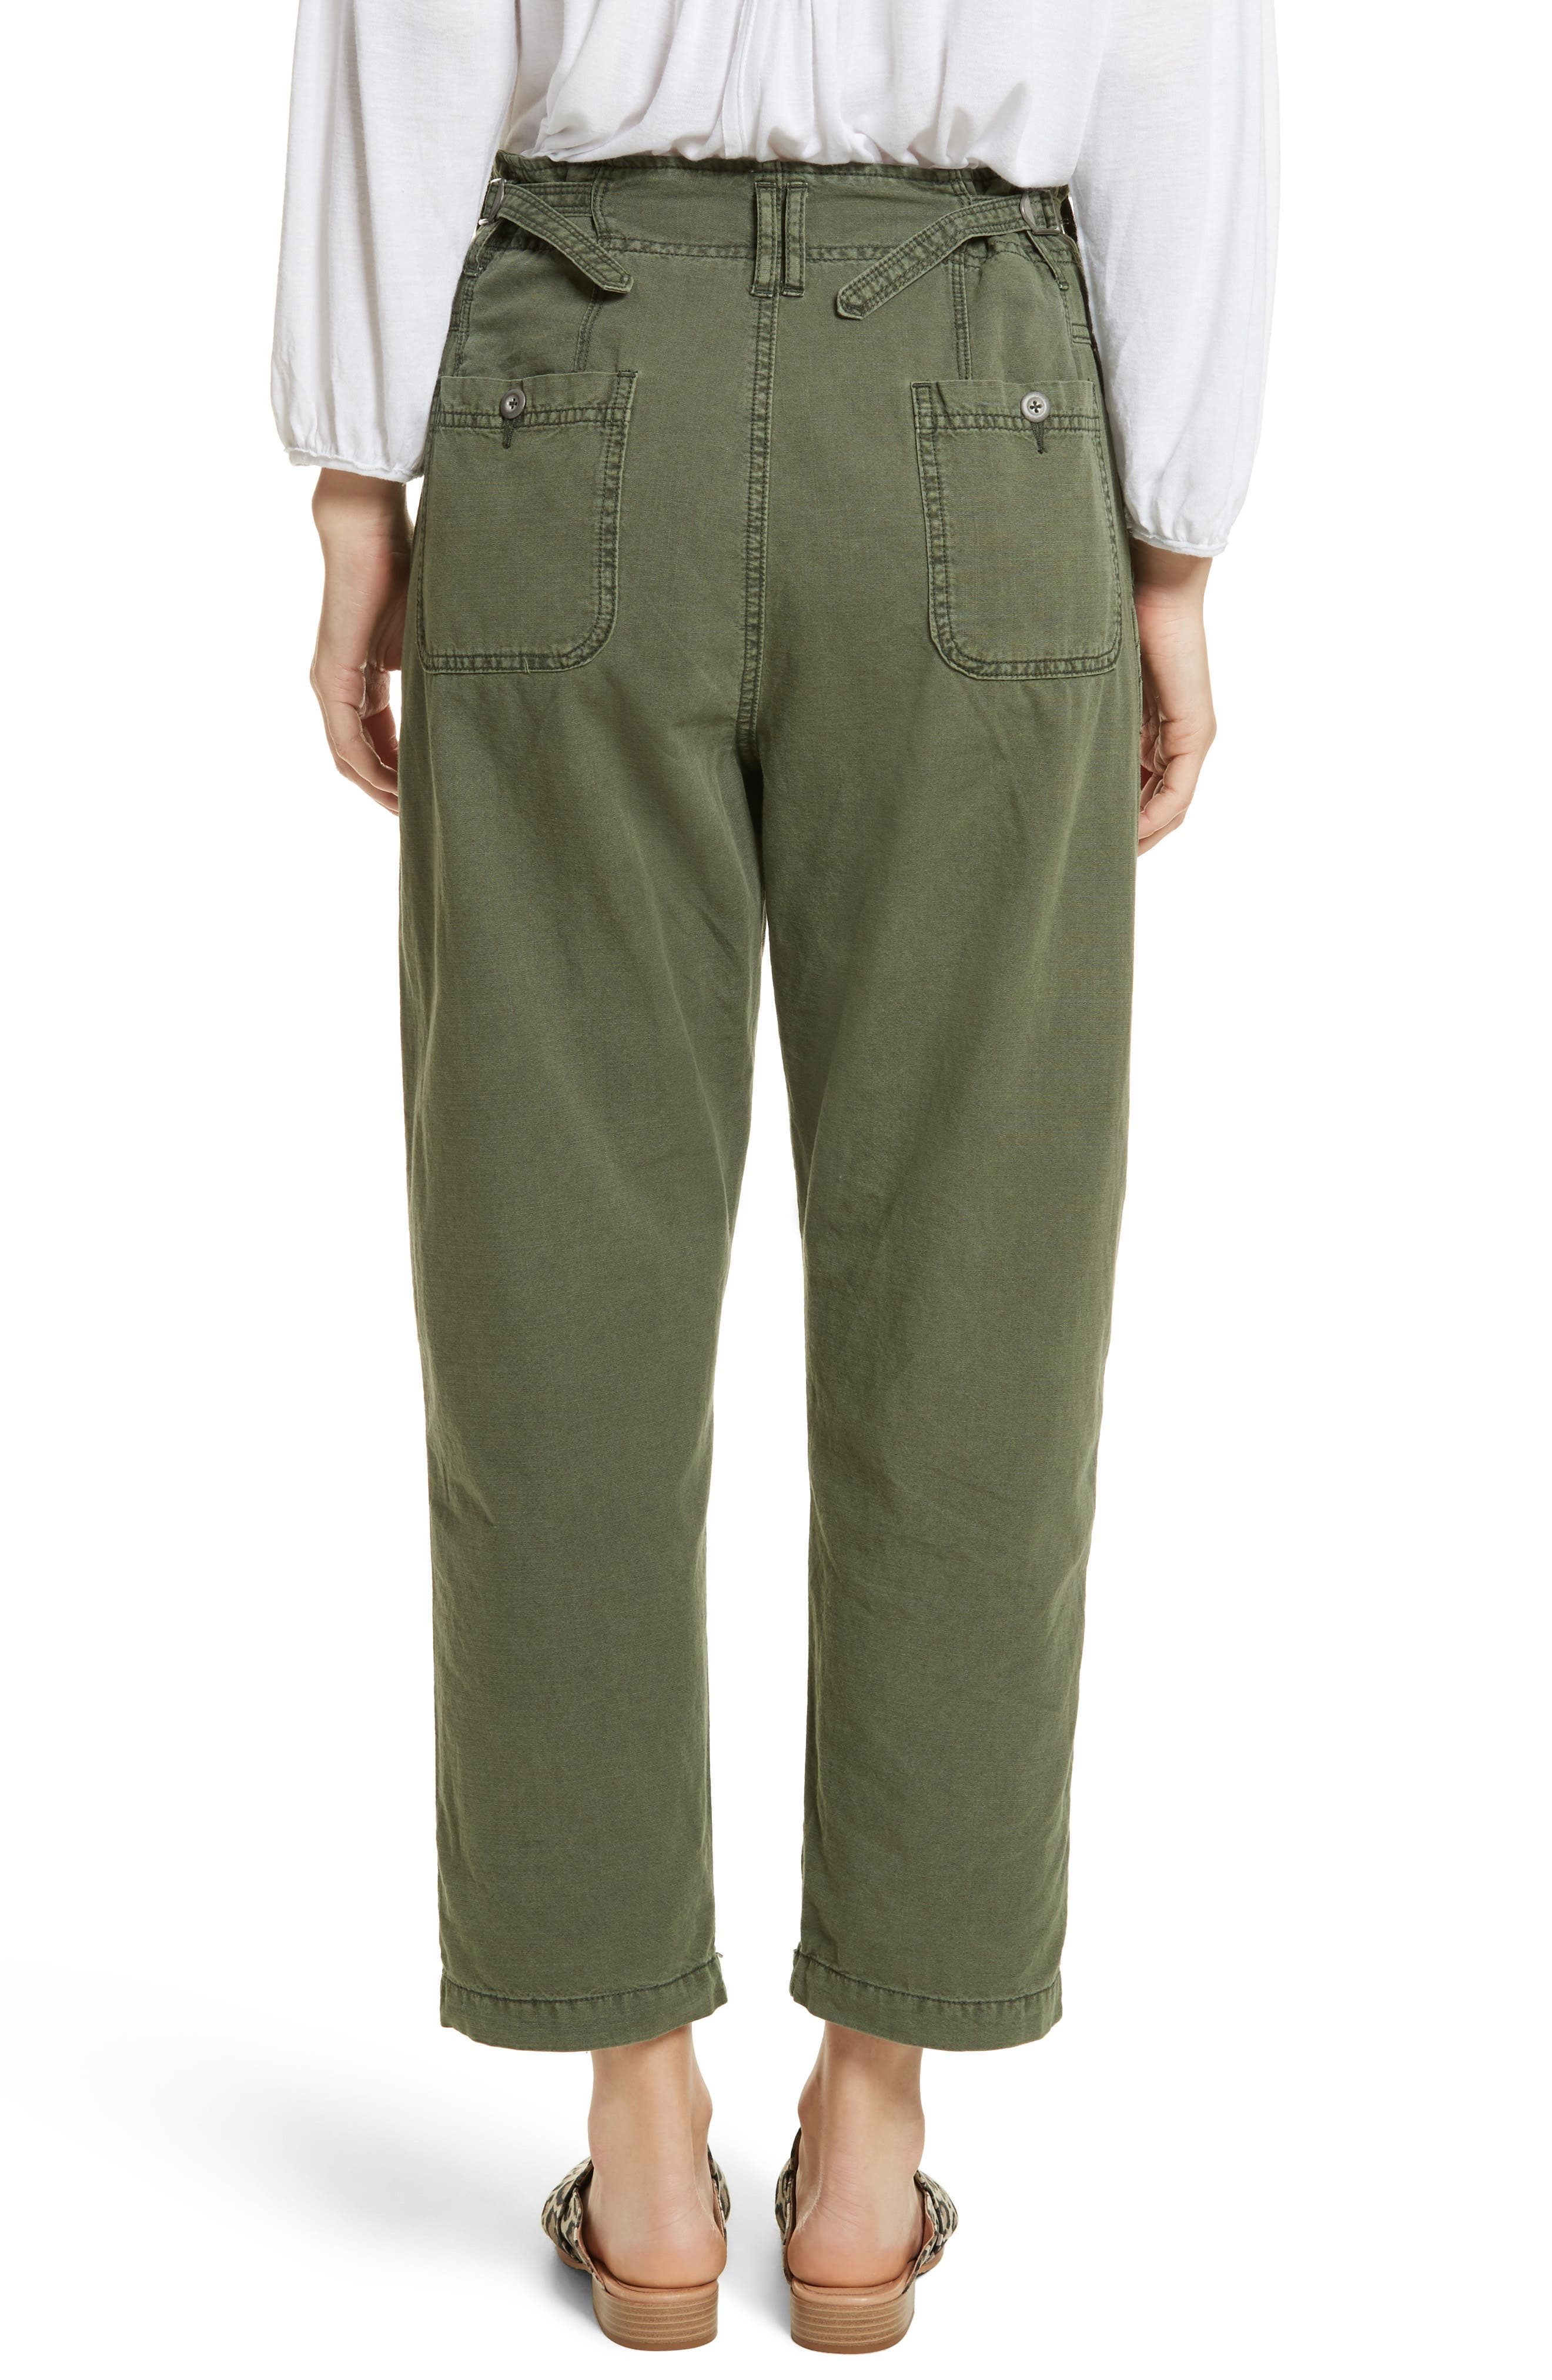 Compass Star Trousers,                             Alternate thumbnail 2, color,                             328